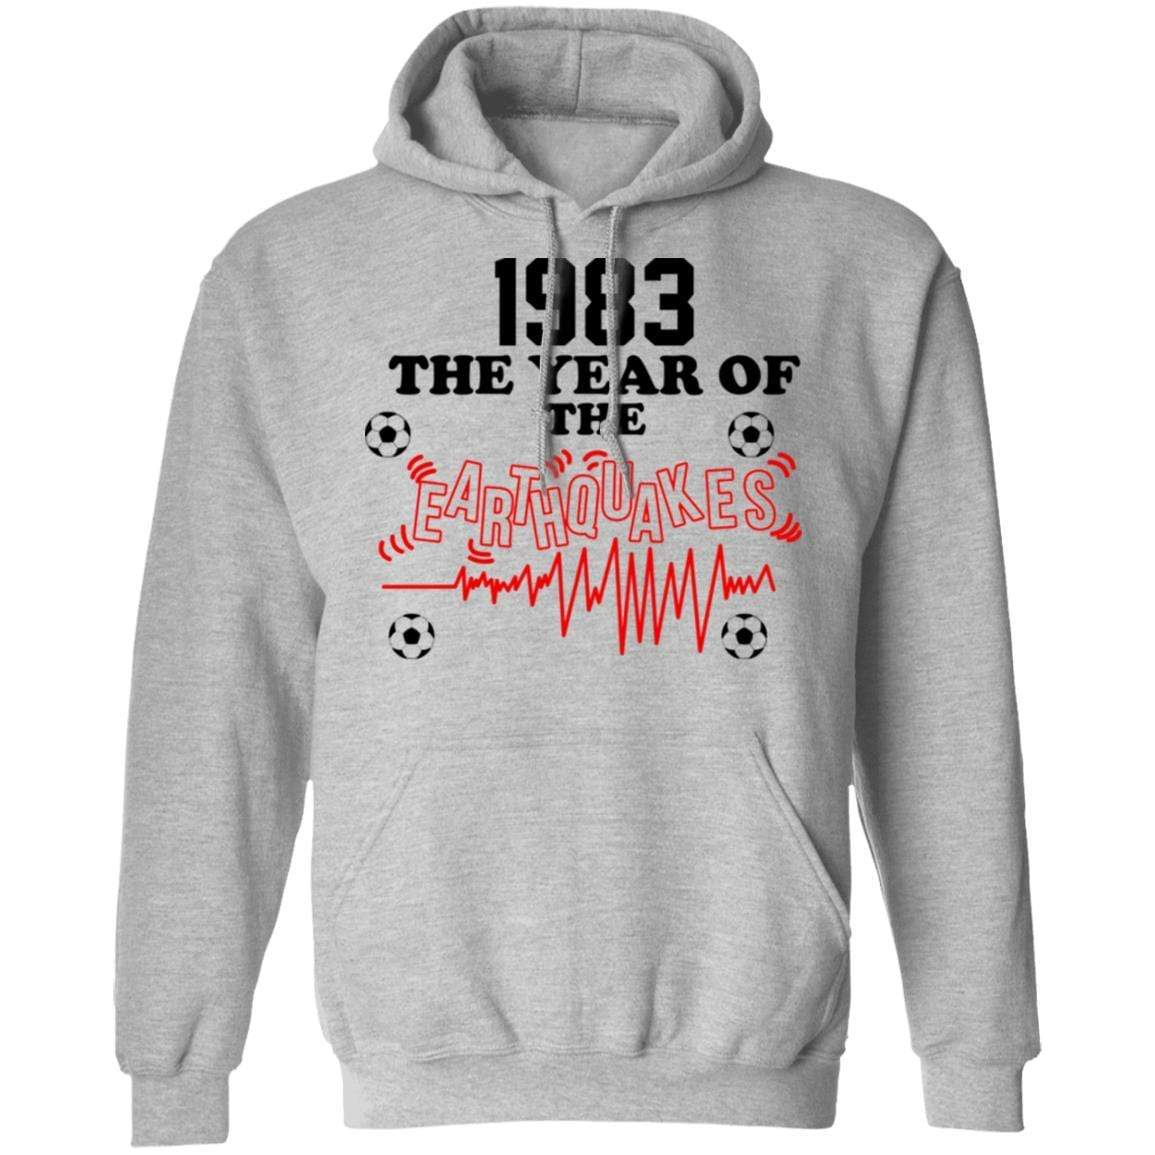 1983 The Year Of The Earthquakes San Jose Earthquakes T-Shirts, Hoodies 541-4741-86355408-23111 - Tee Ript